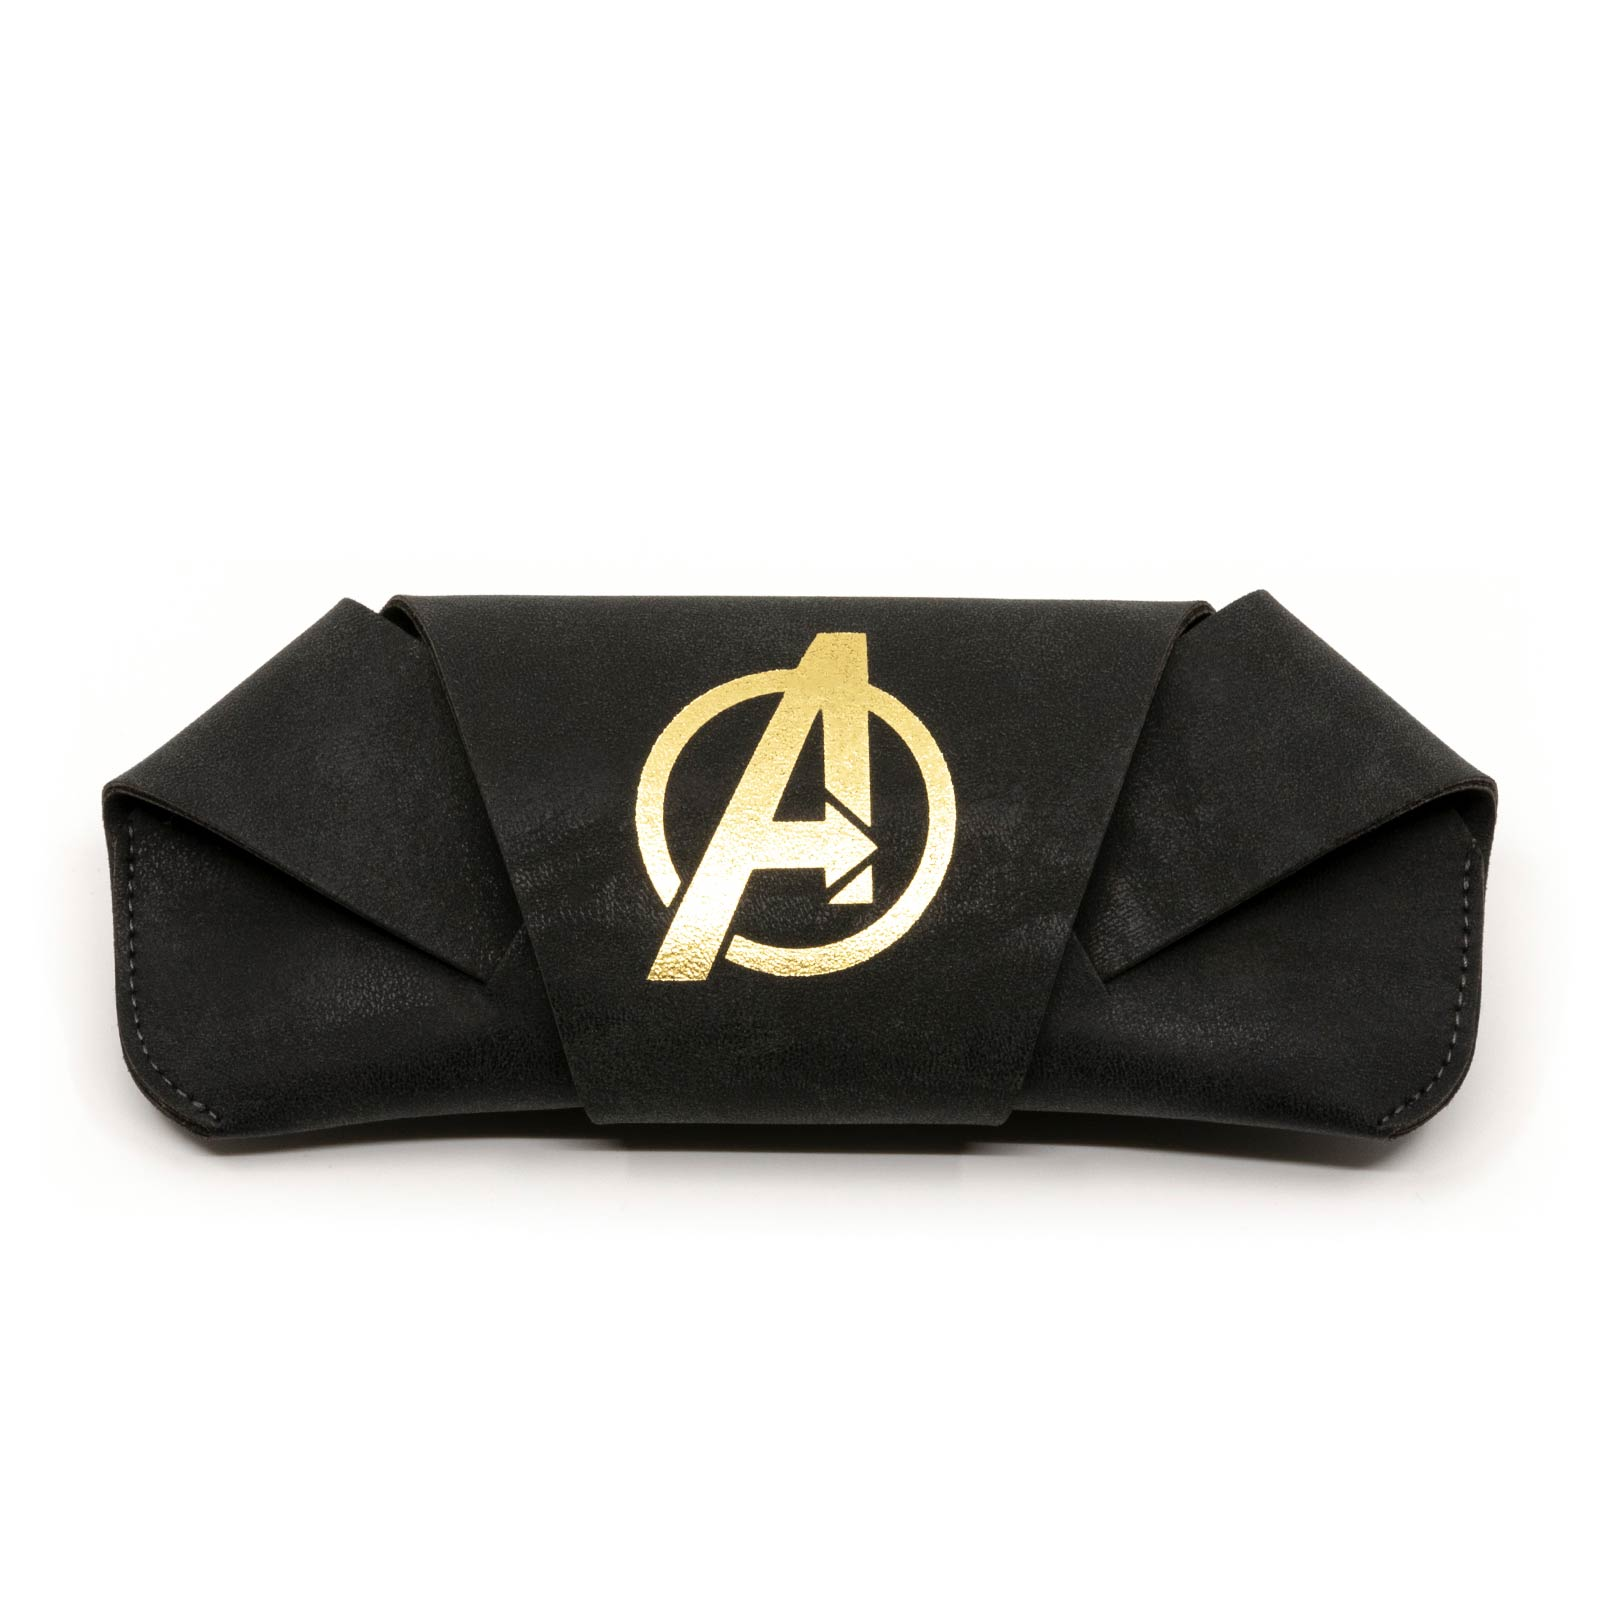 MARVEL'S AVENGERS - BLACK + GOLD FLASH